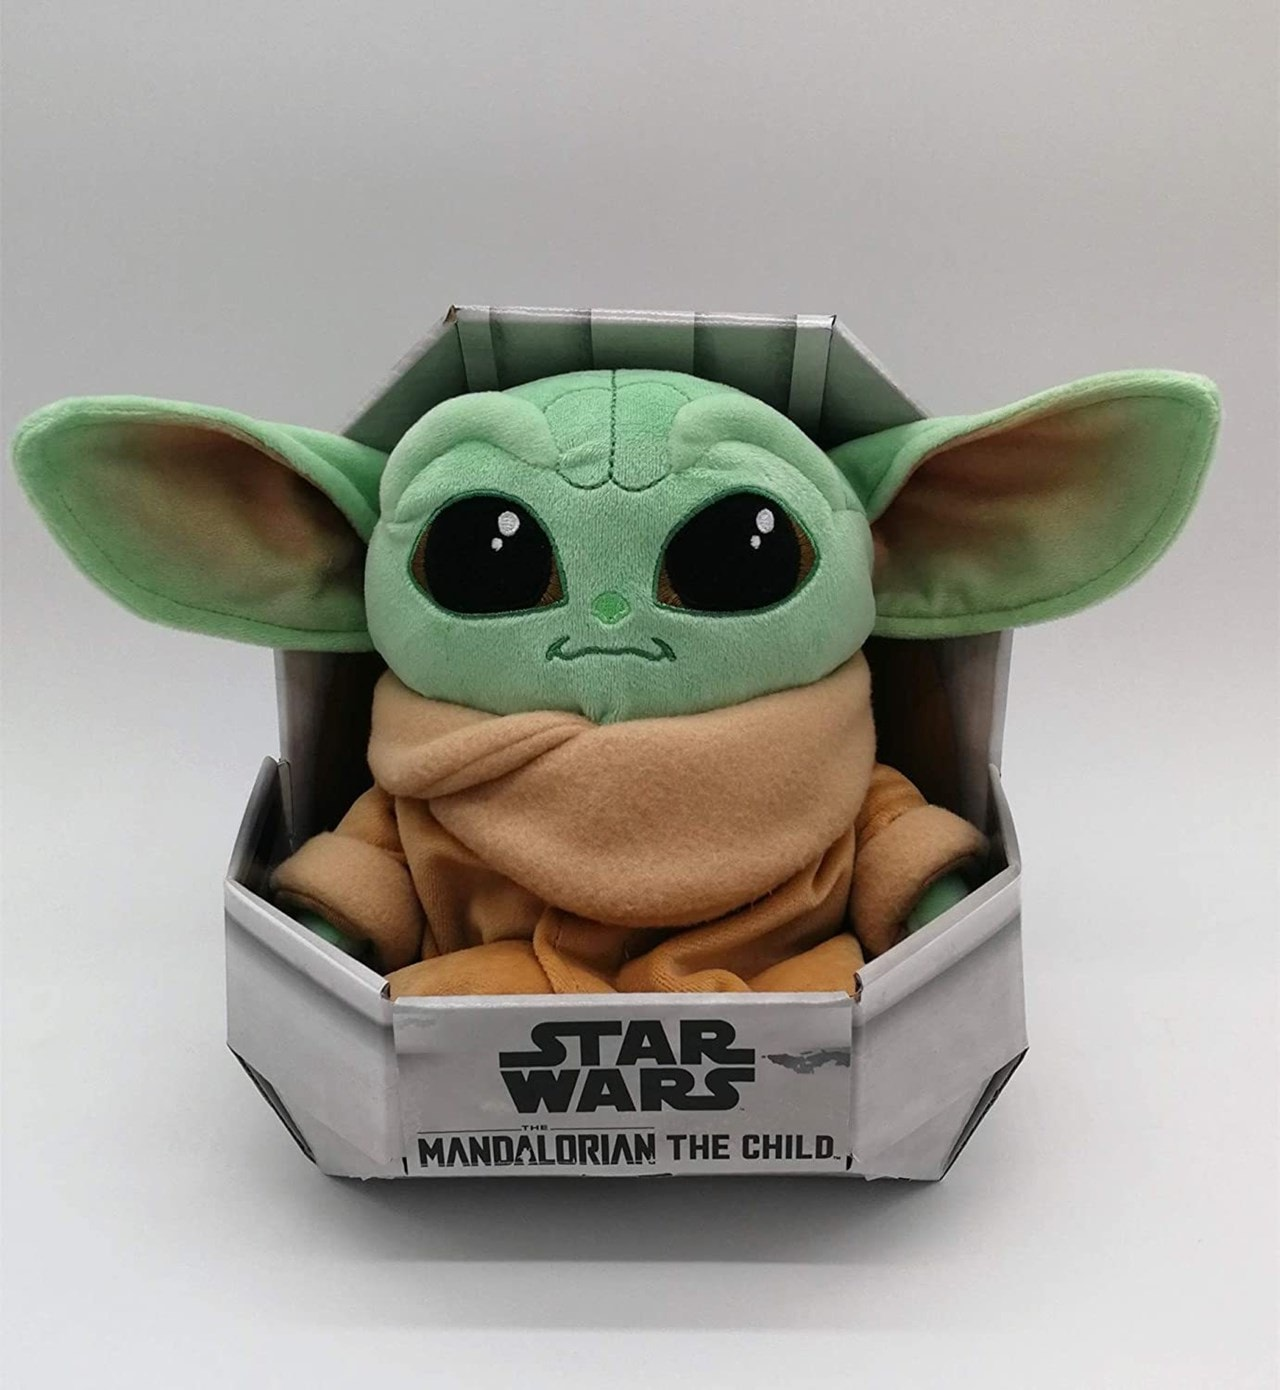 Baby Yoda Star Wars Plush Toy Plush Free Shipping Over 20 Hmv Store